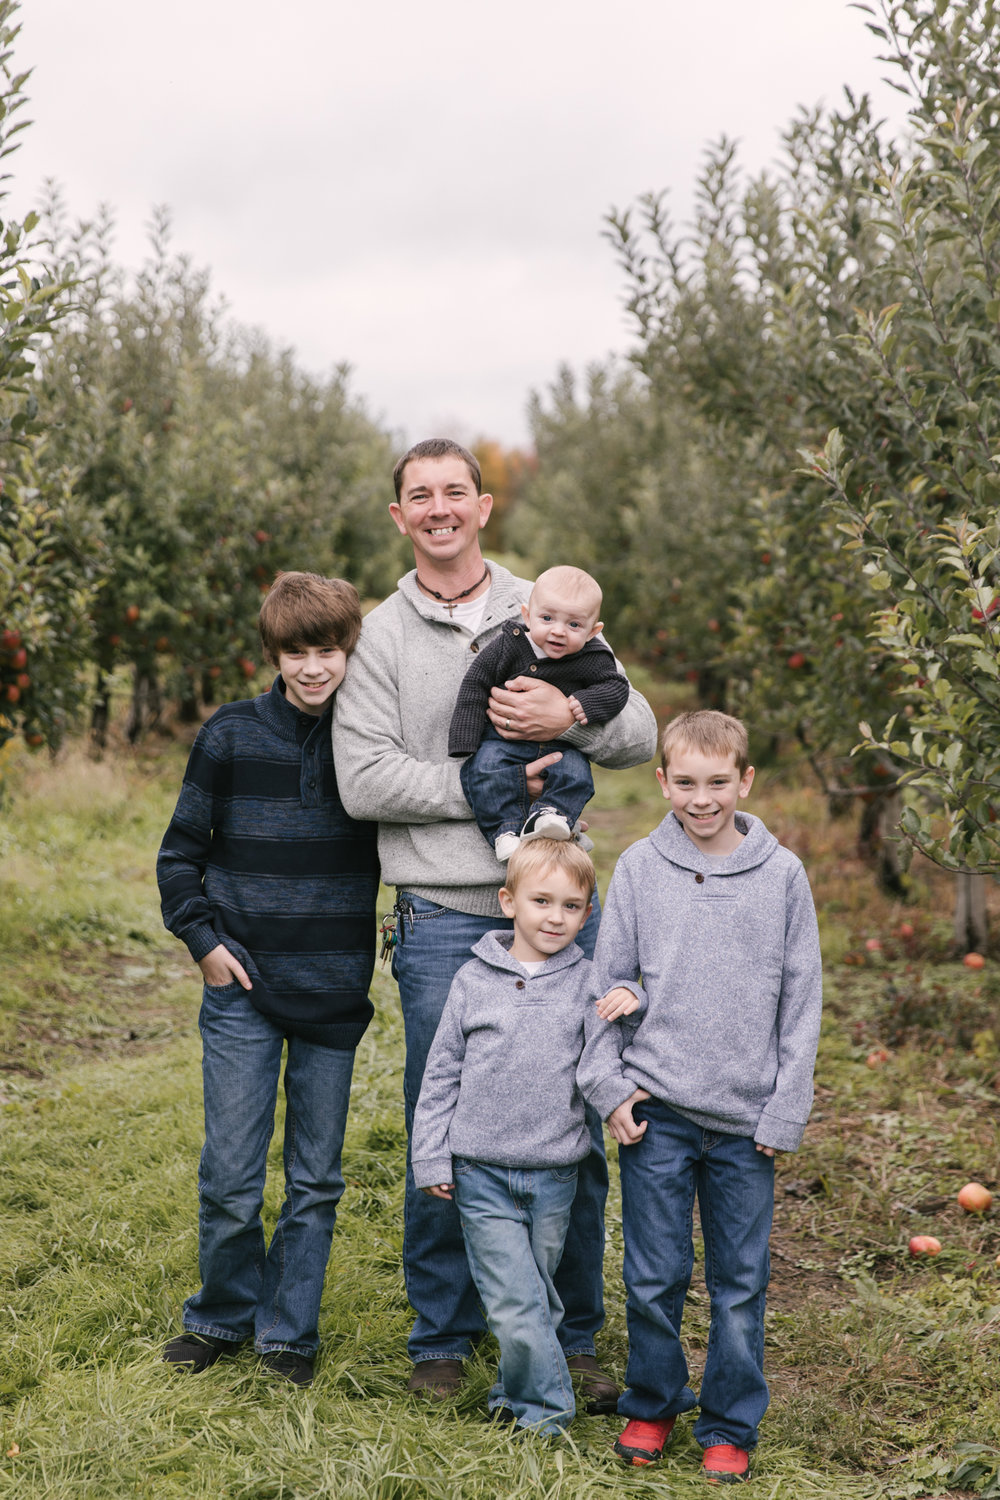 family-photography-session-at-hartford-apple-orchards-hartford-ohio-by-family-photographer-christie-leigh-photo-50.JPG